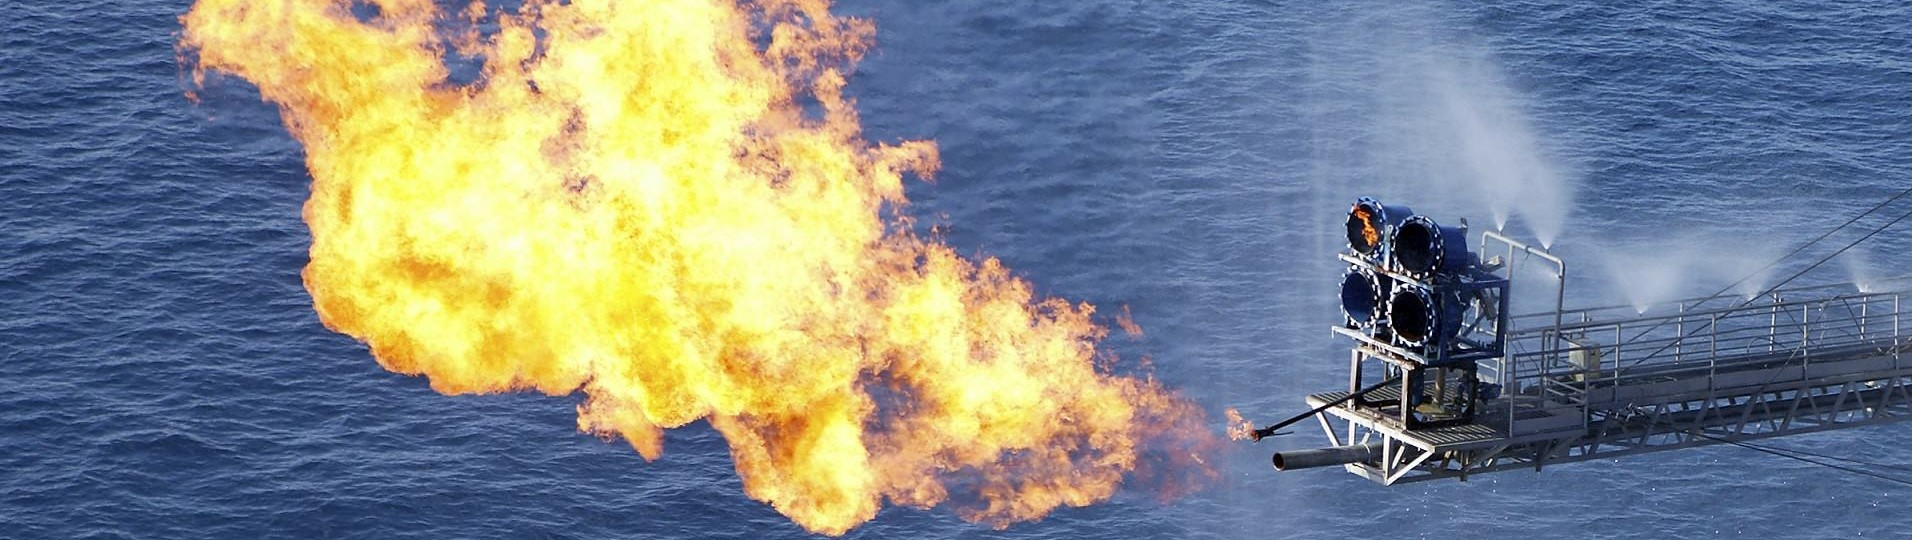 Offshore oil rig flaring gas for well testing